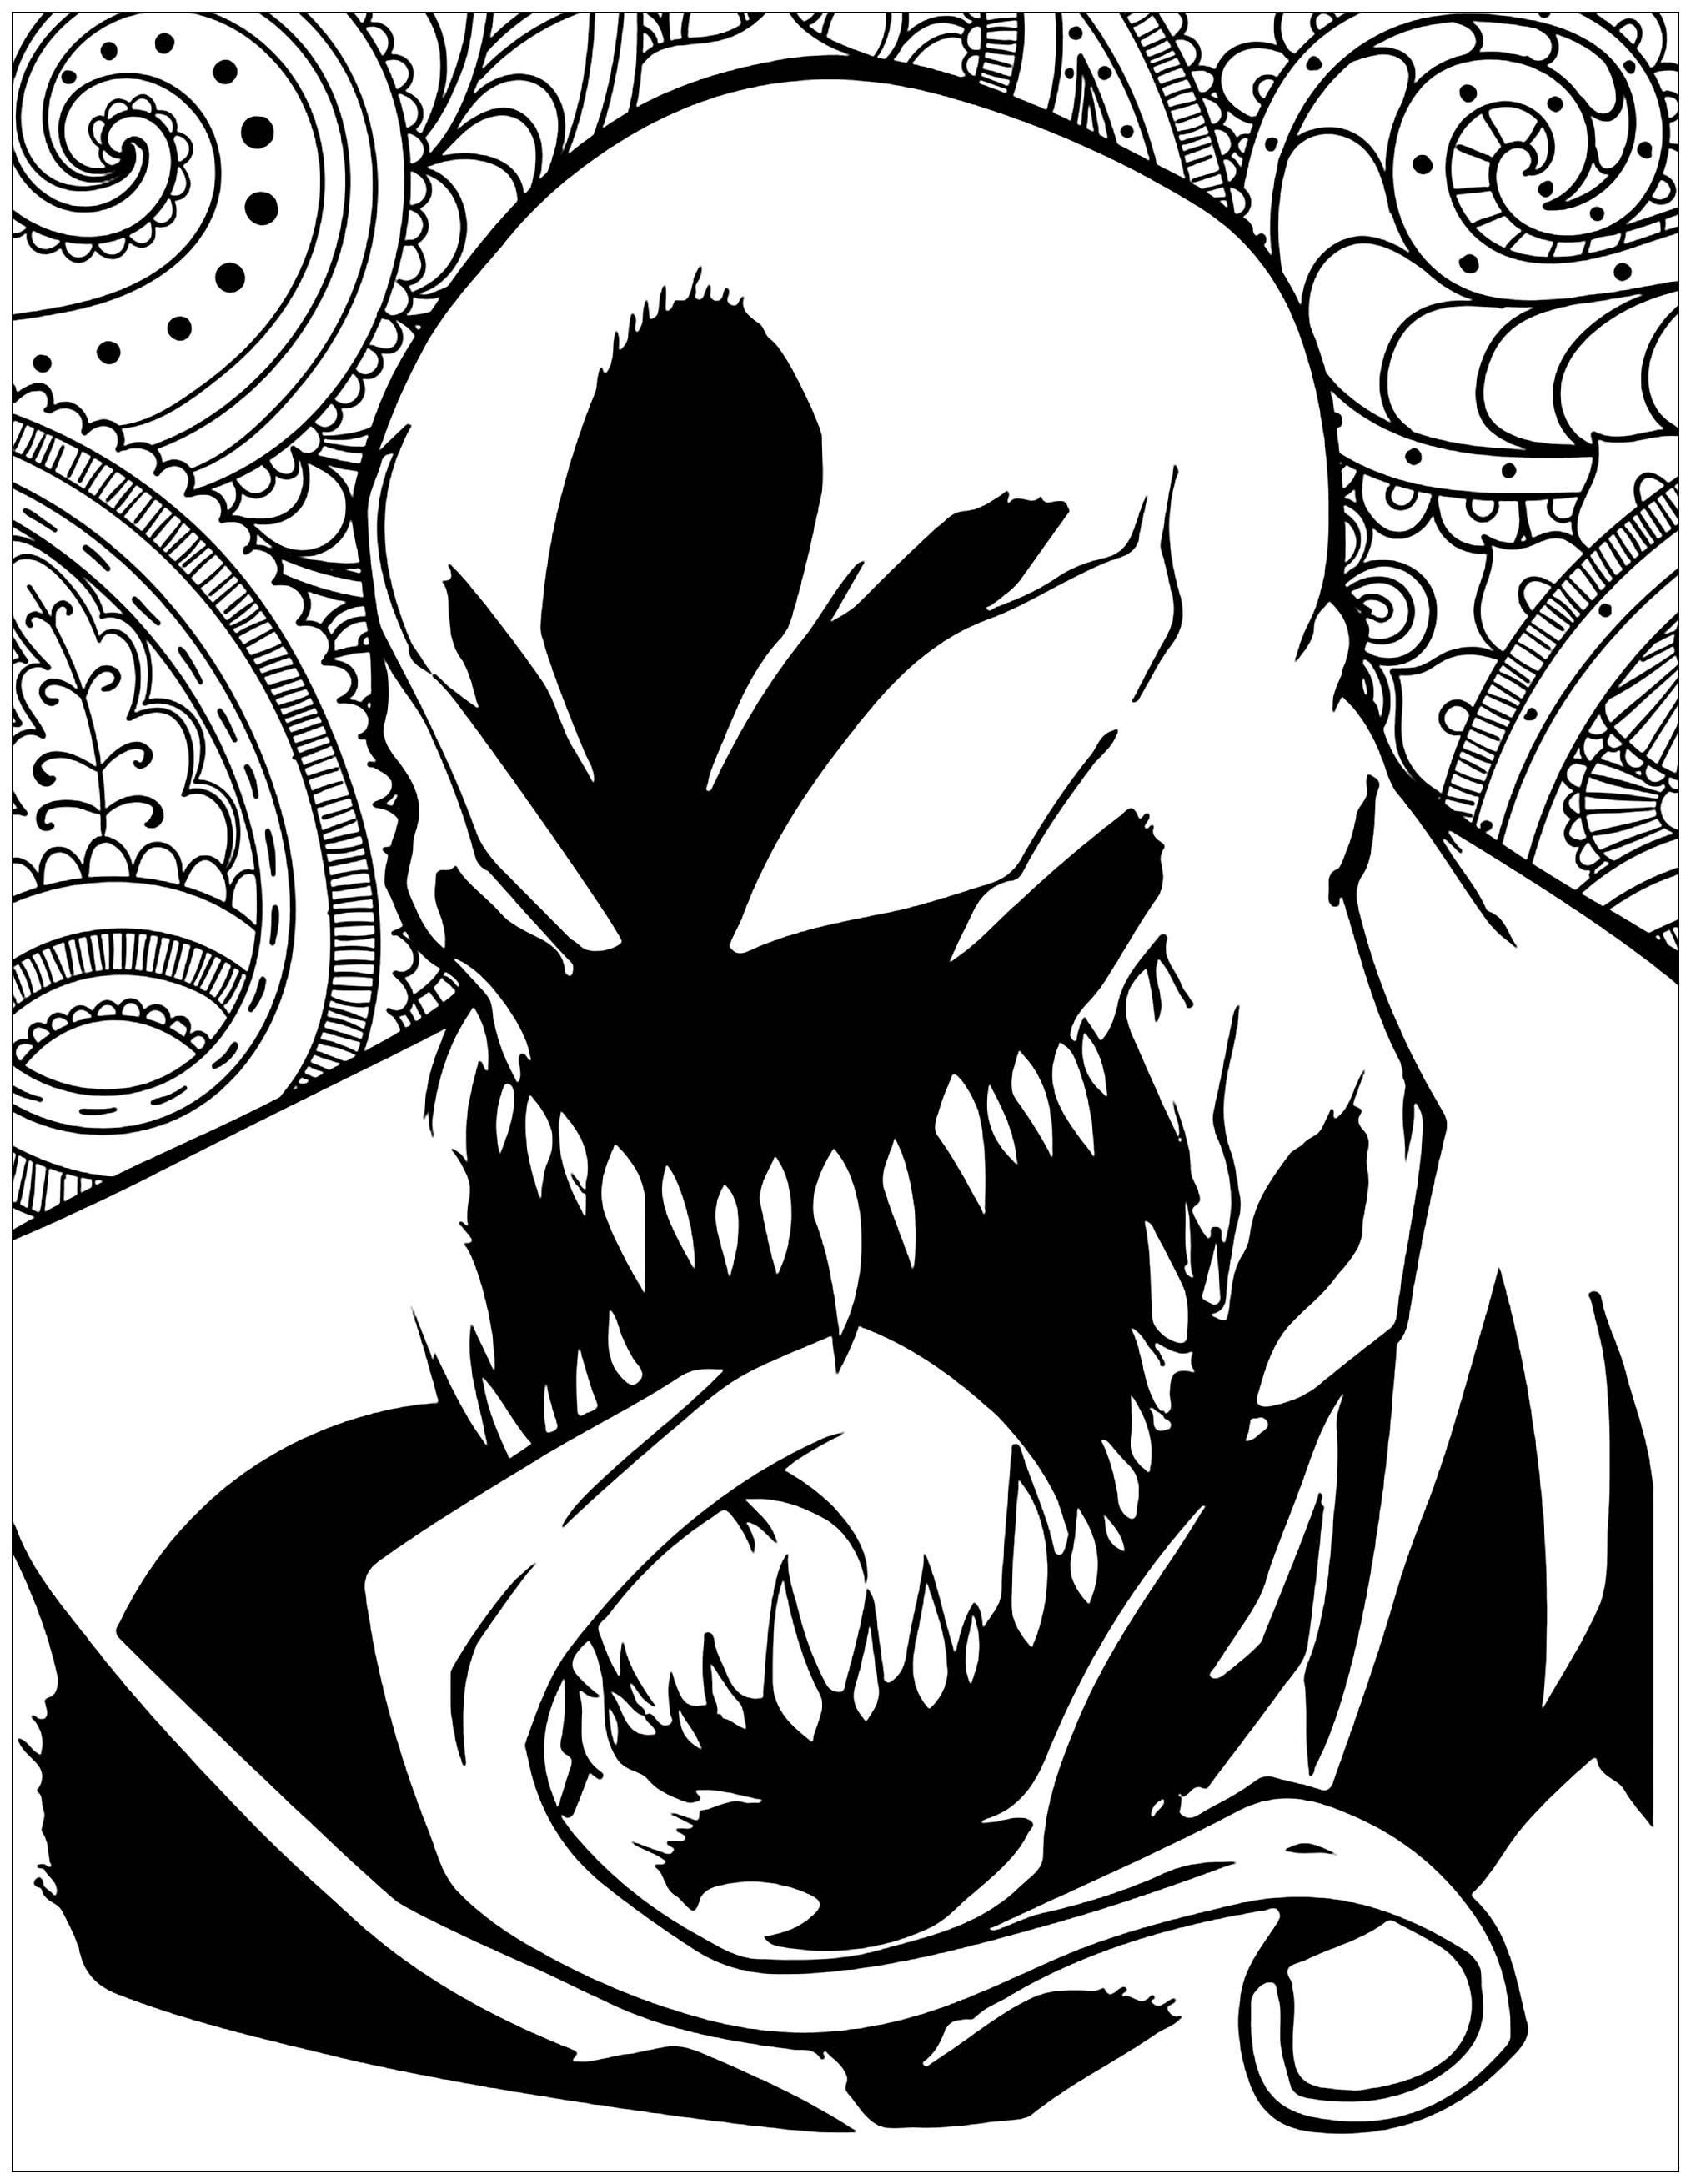 Marvel Villains Venom Books And Comics Coloring Pages For Adults